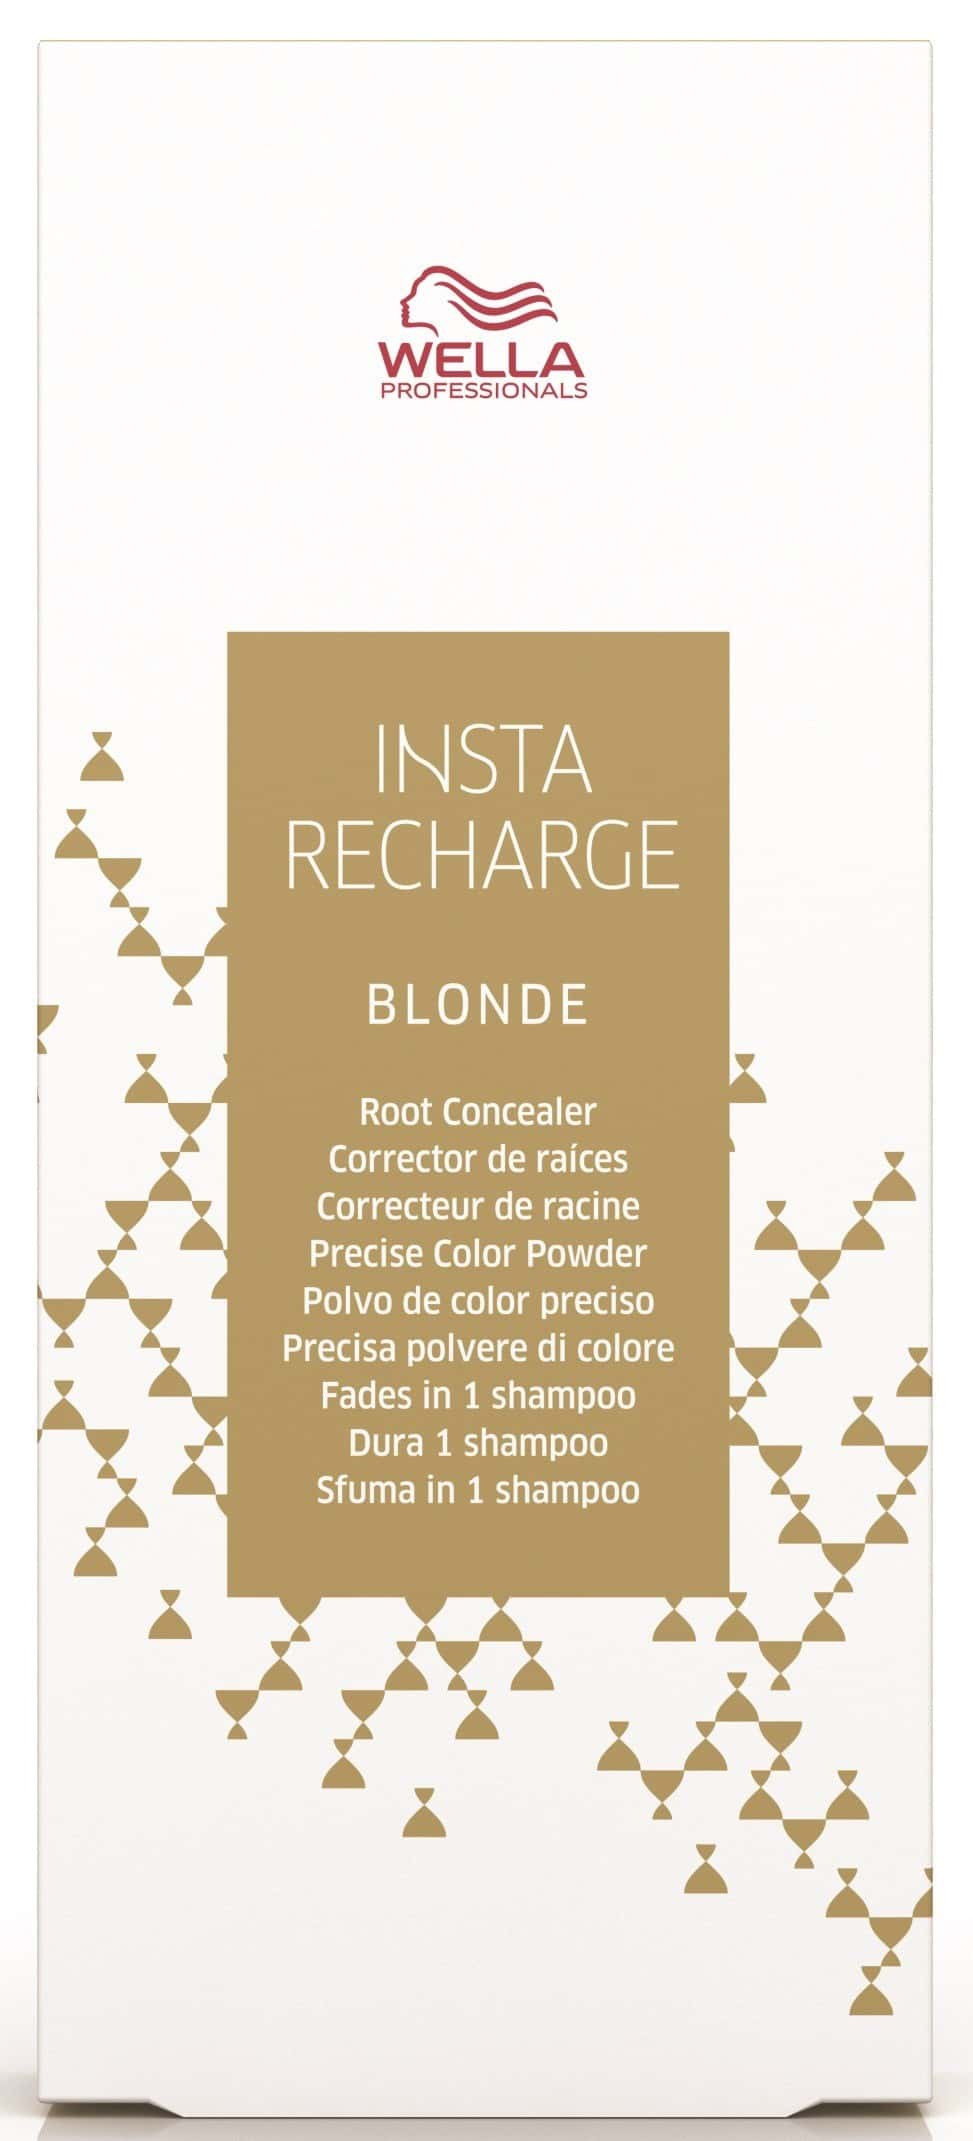 Wella Professional Instarecharge Powder Blonde